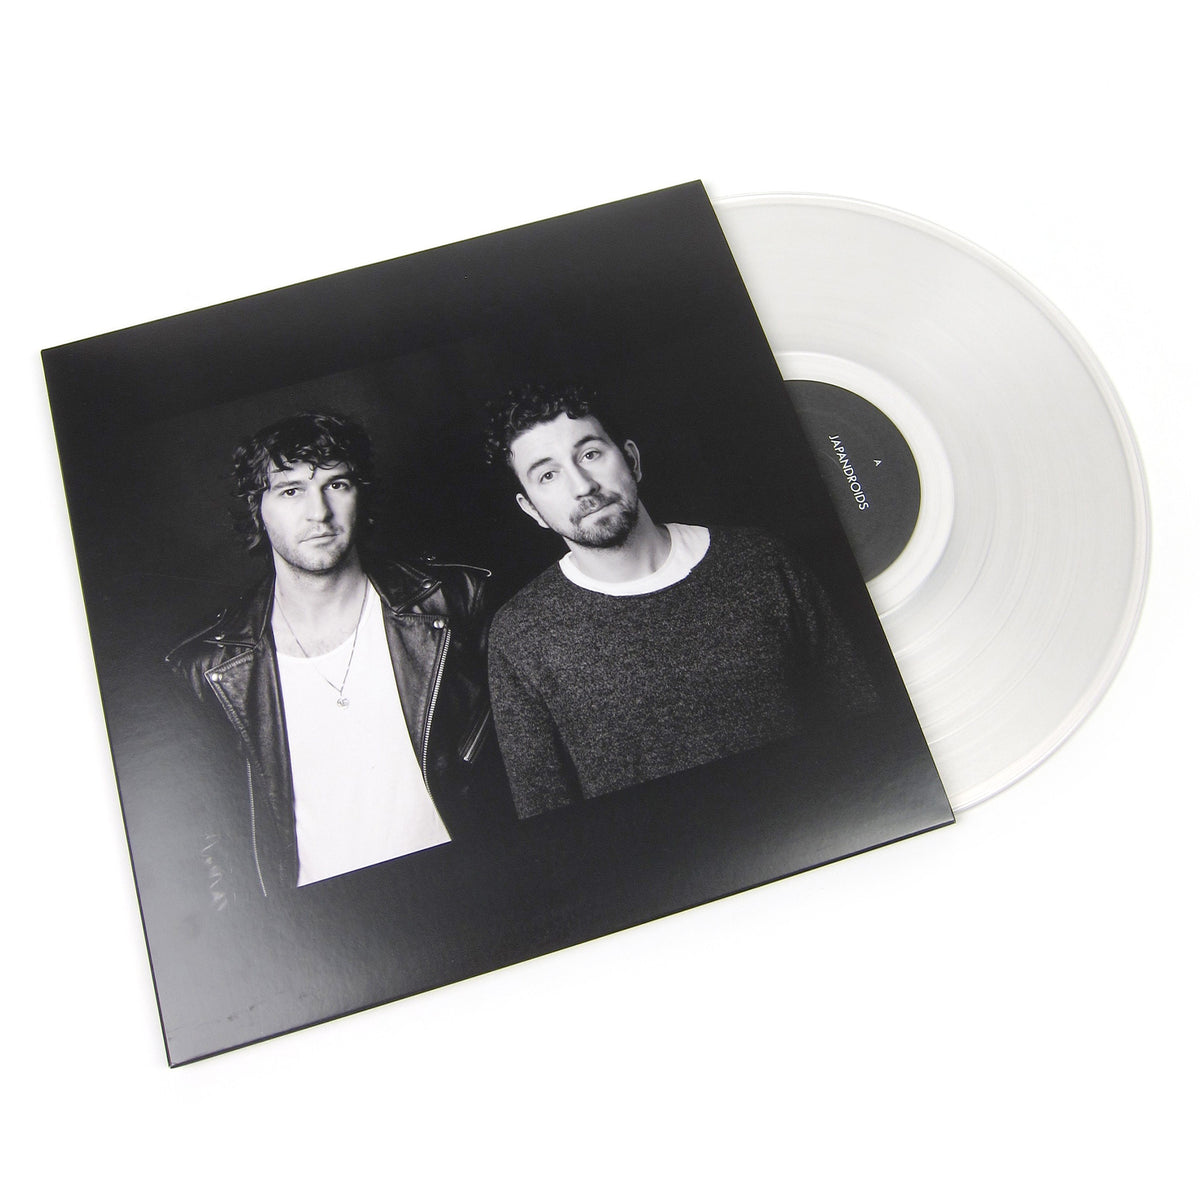 Japandroids: Near To The Wild Heart Of Life (Indie Exclusive Colored Vinyl) Vinyl LP